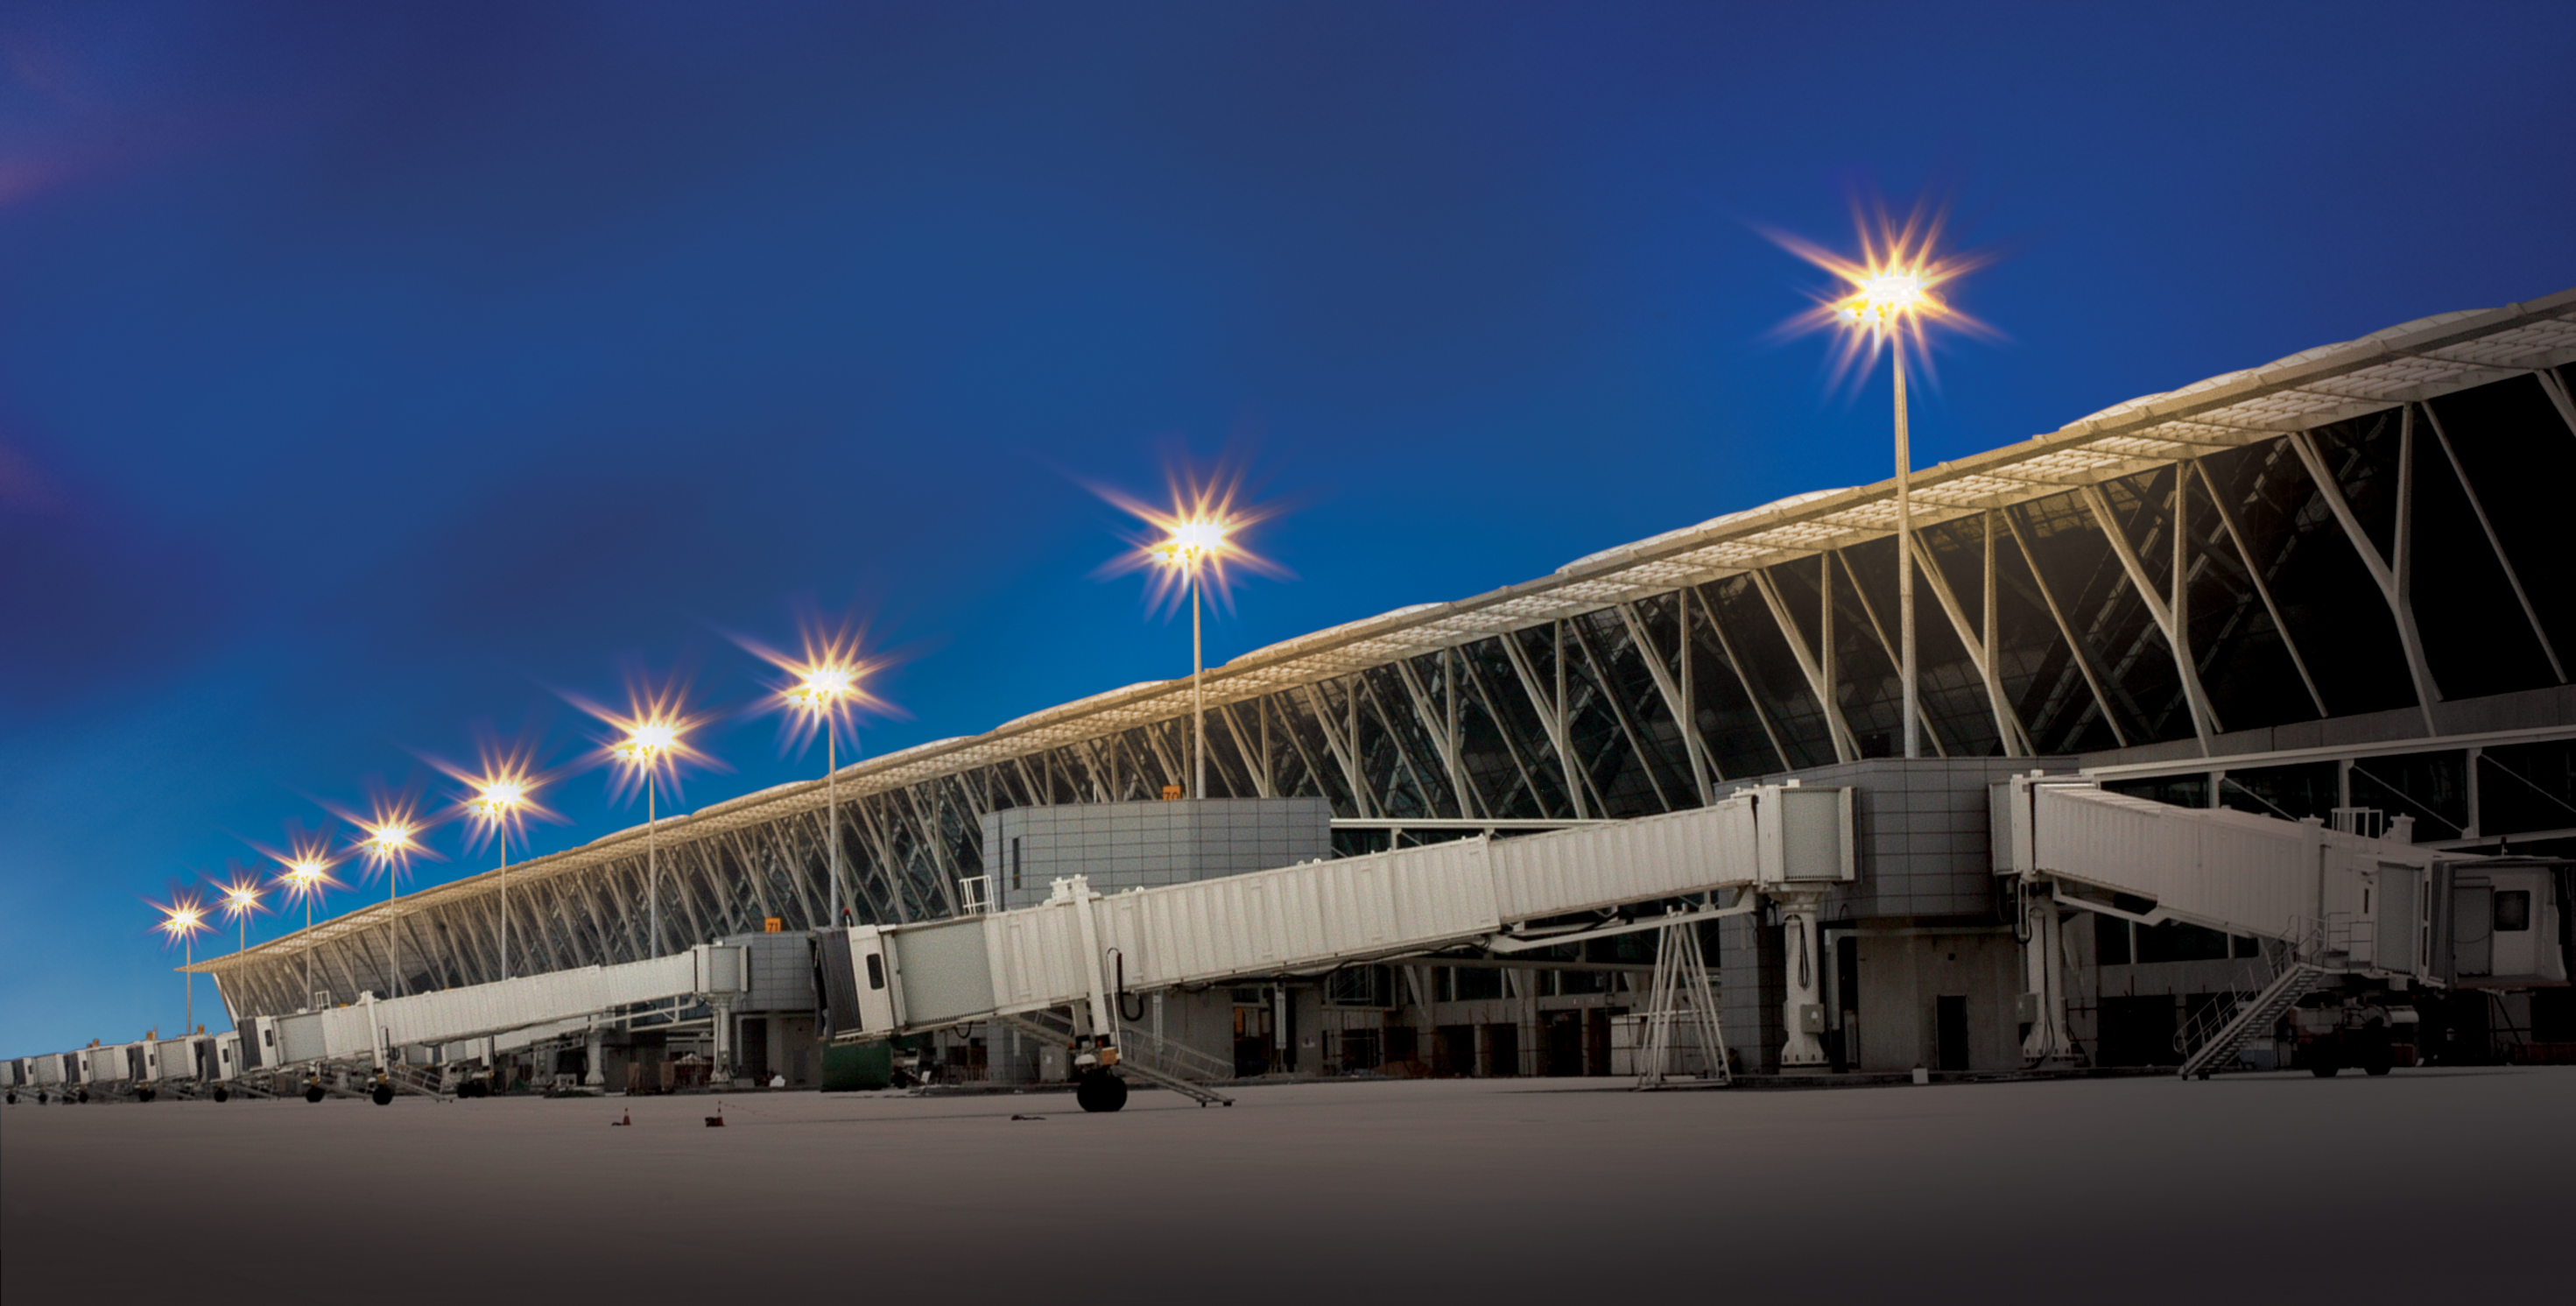 Images & Airport Suppliers - Abacus Lighting - Airport Exterior Lighting ... azcodes.com